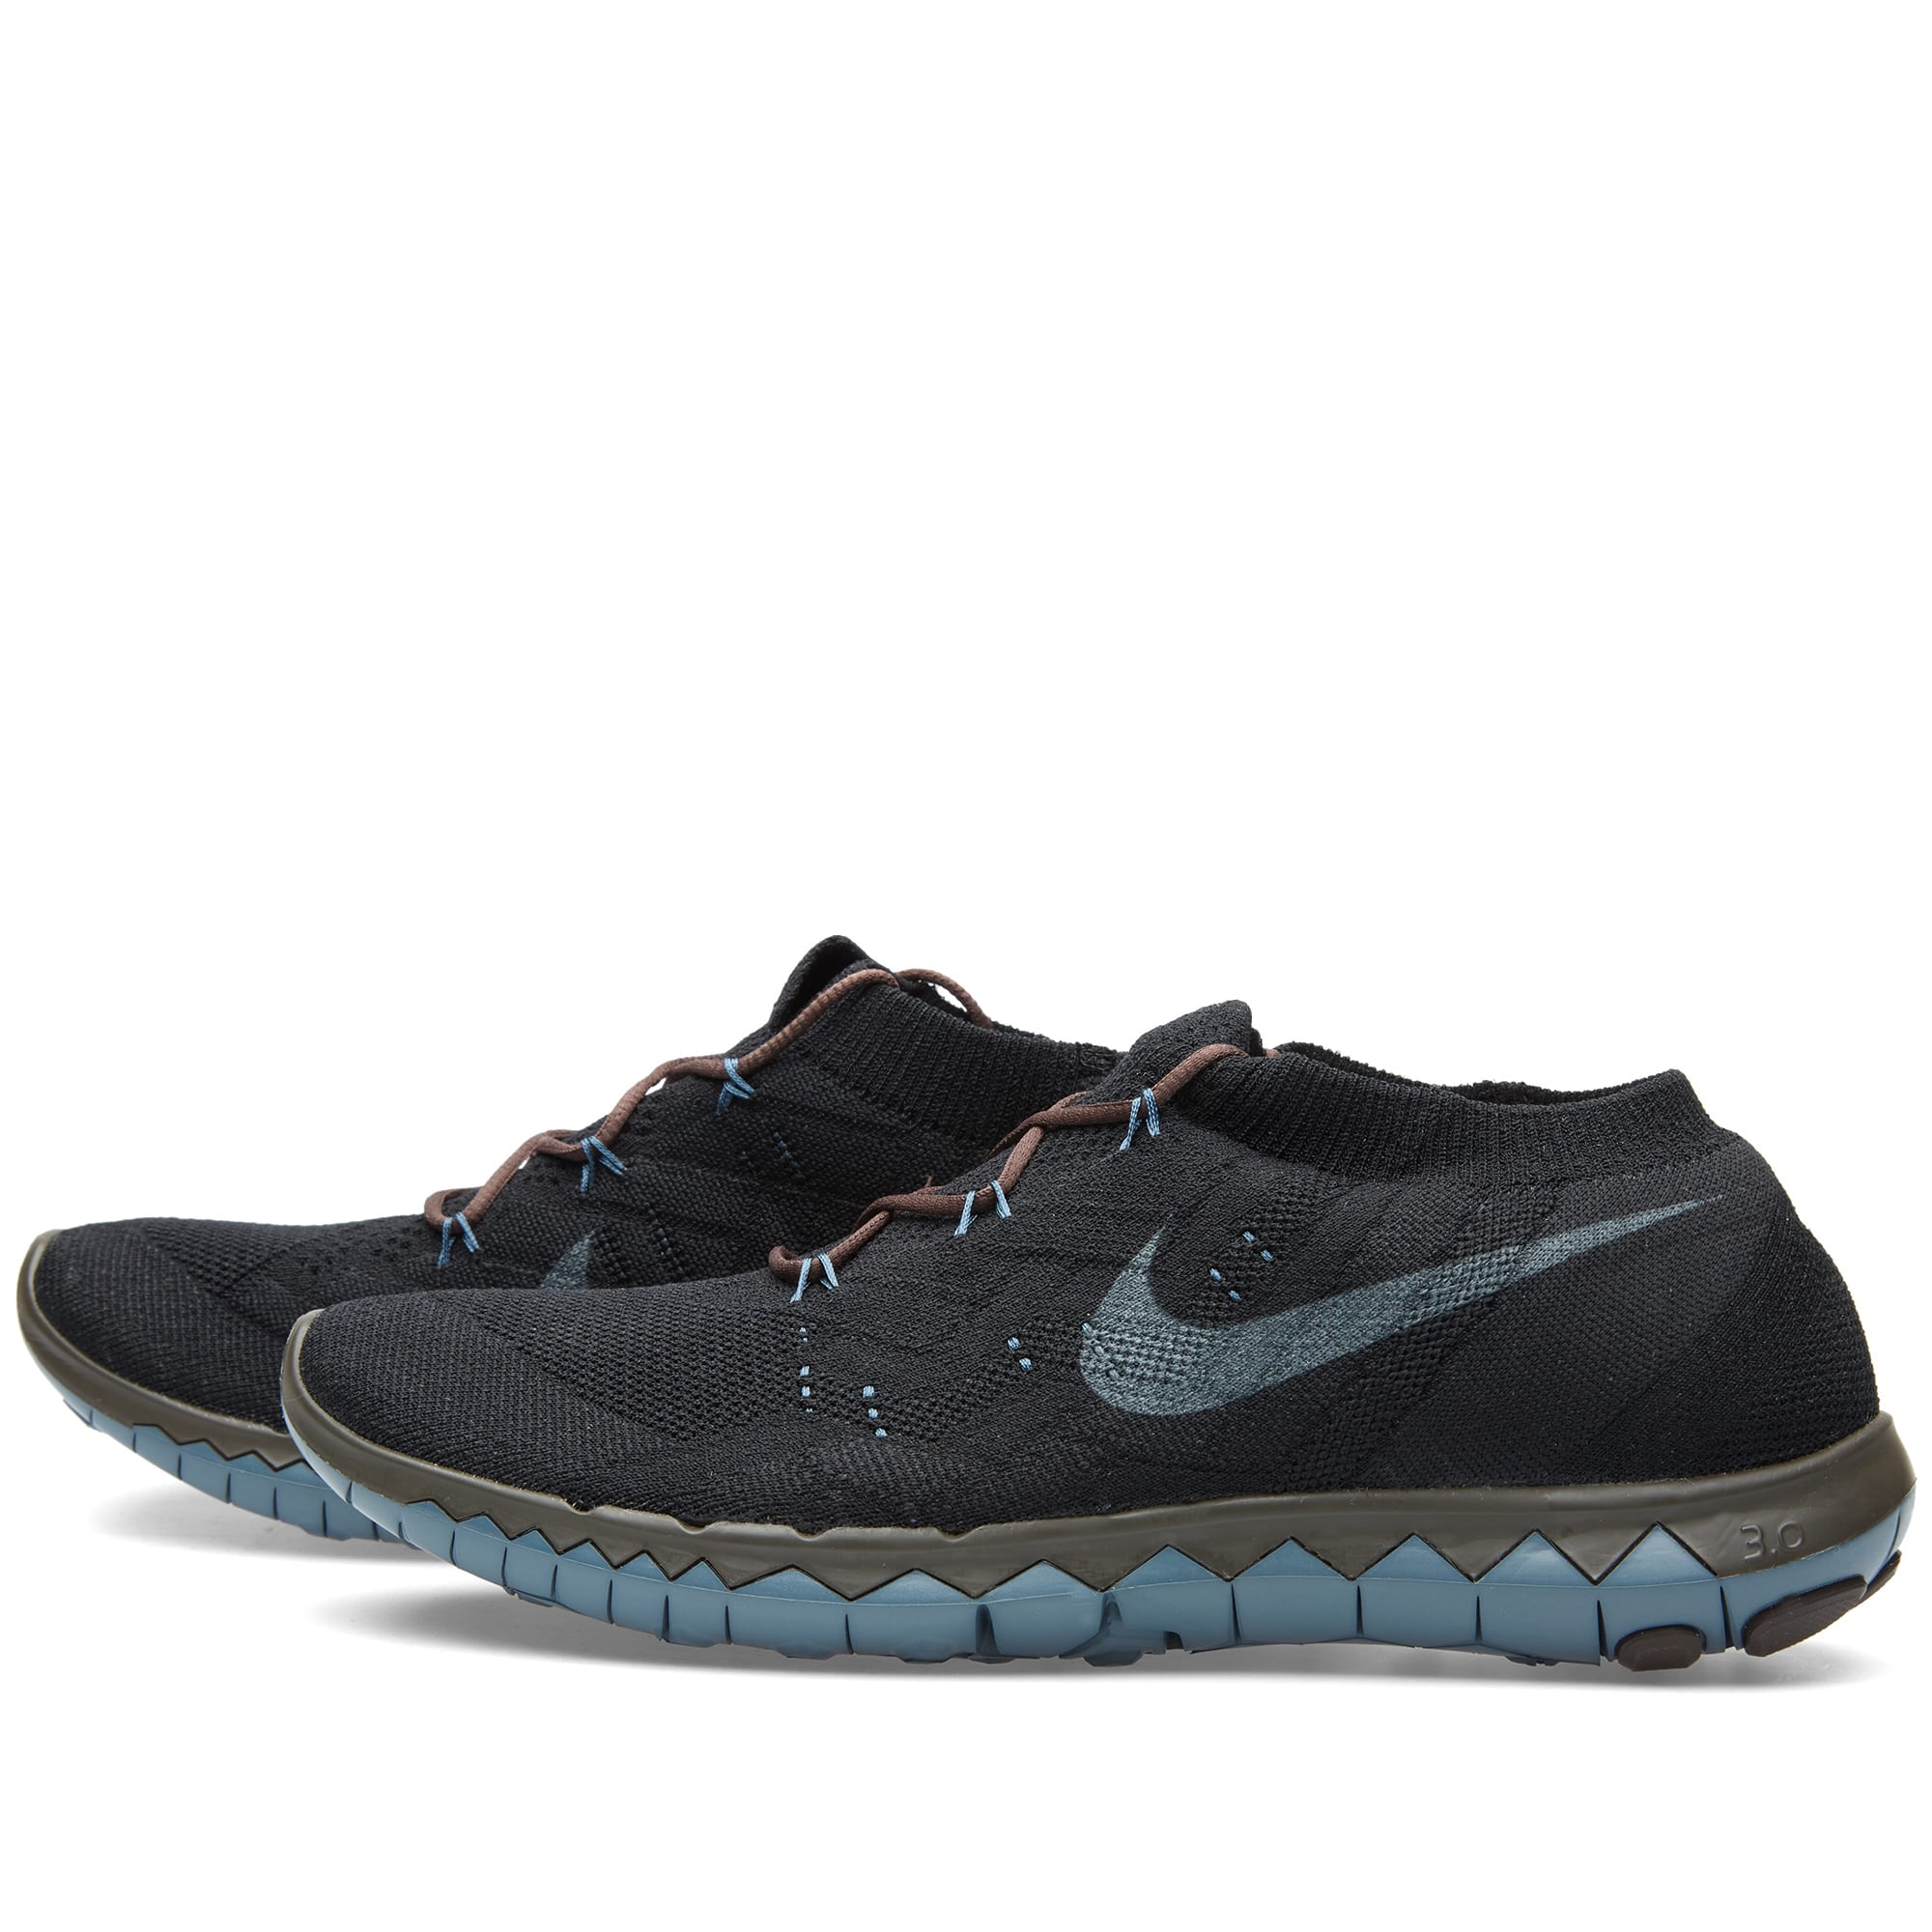 sports shoes 317a9 f1995 Nike x Undercover Gyakusou Free Flyknit 3.0 Black, Baroque Brown   Slate    END.